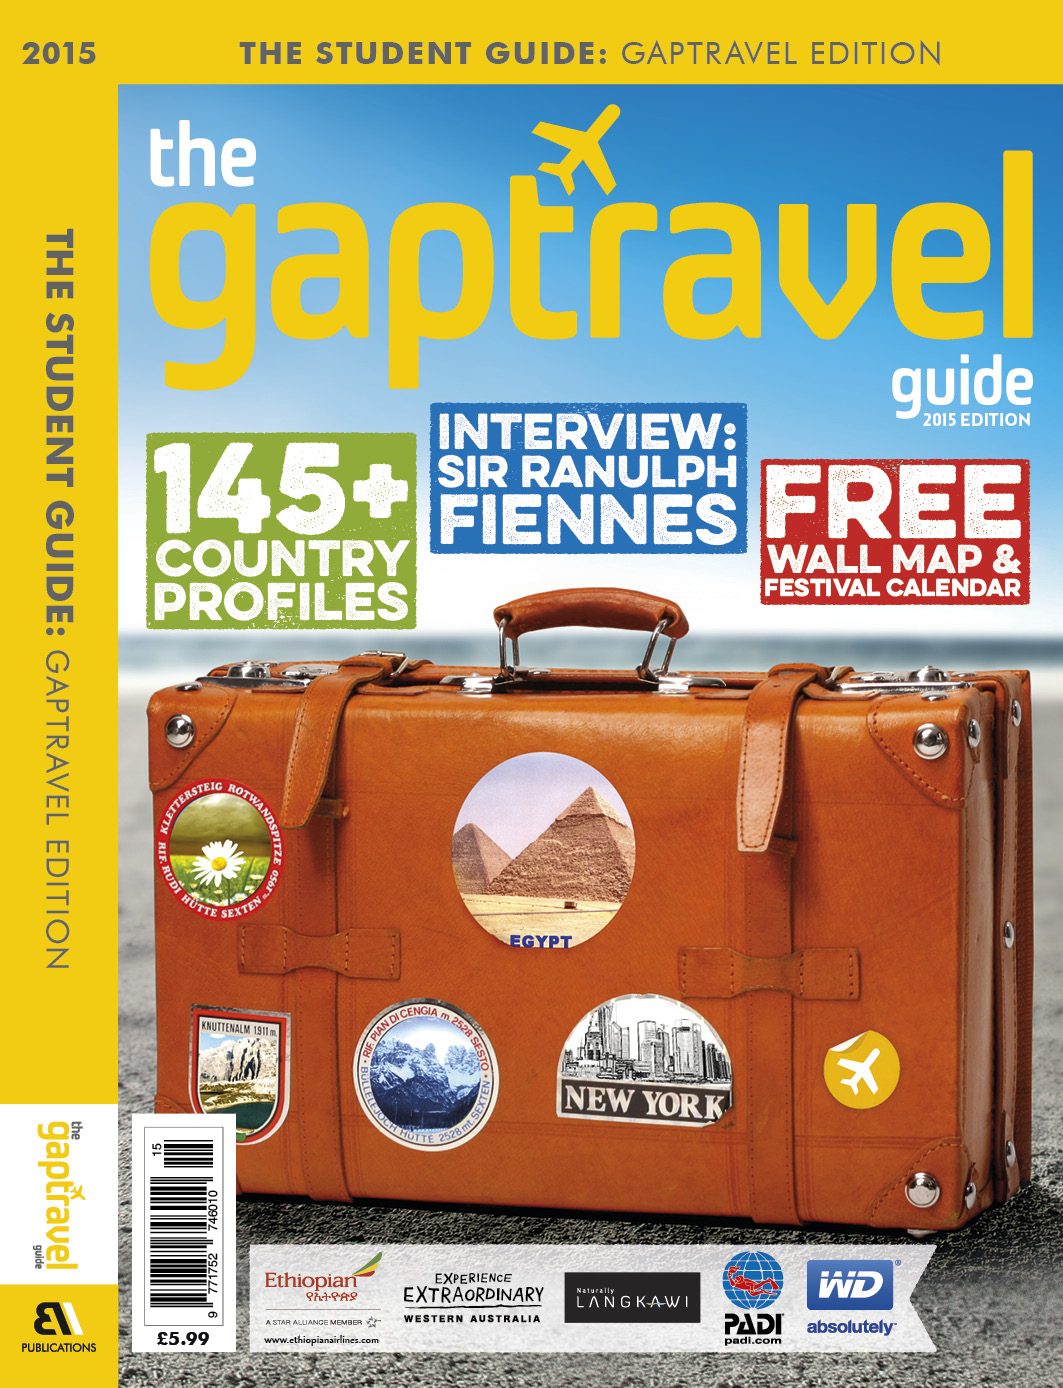 gap travel gaptravel guide student guide british american media gaptravelguide